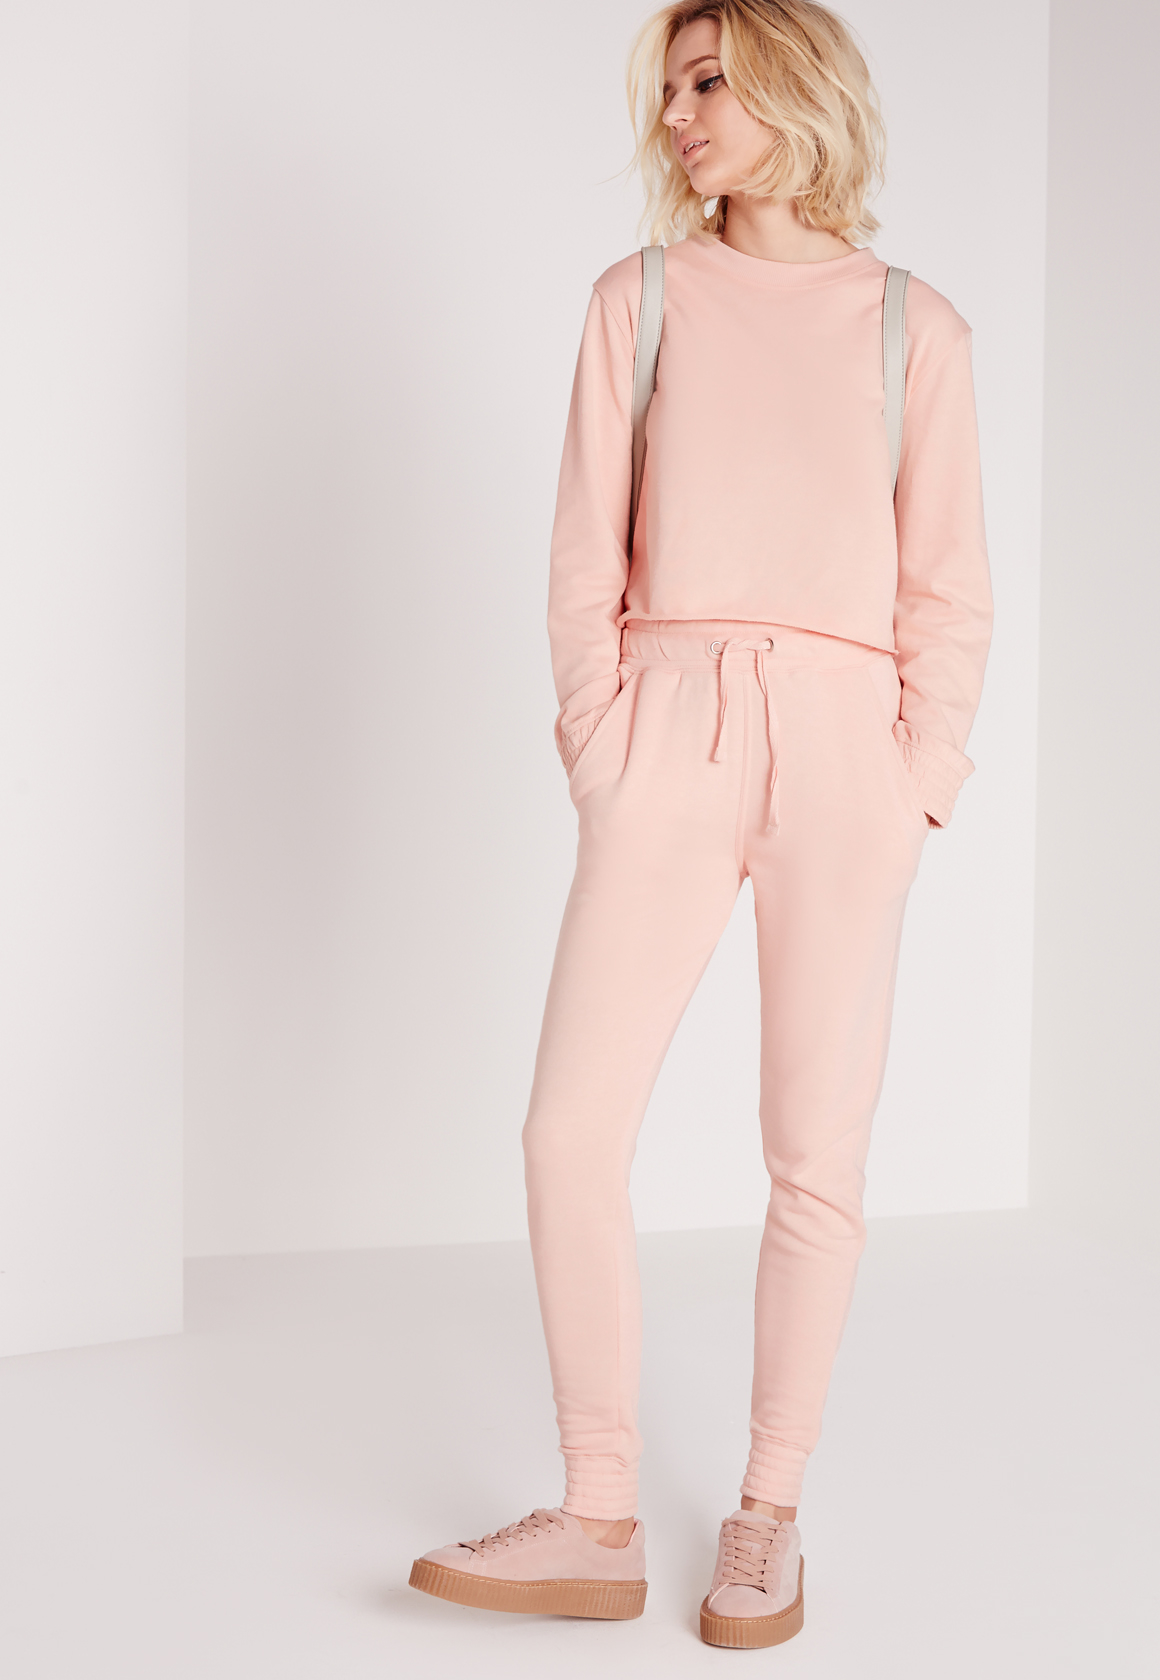 Missguided Pink Crew Neck Sweater in Pink | Lyst